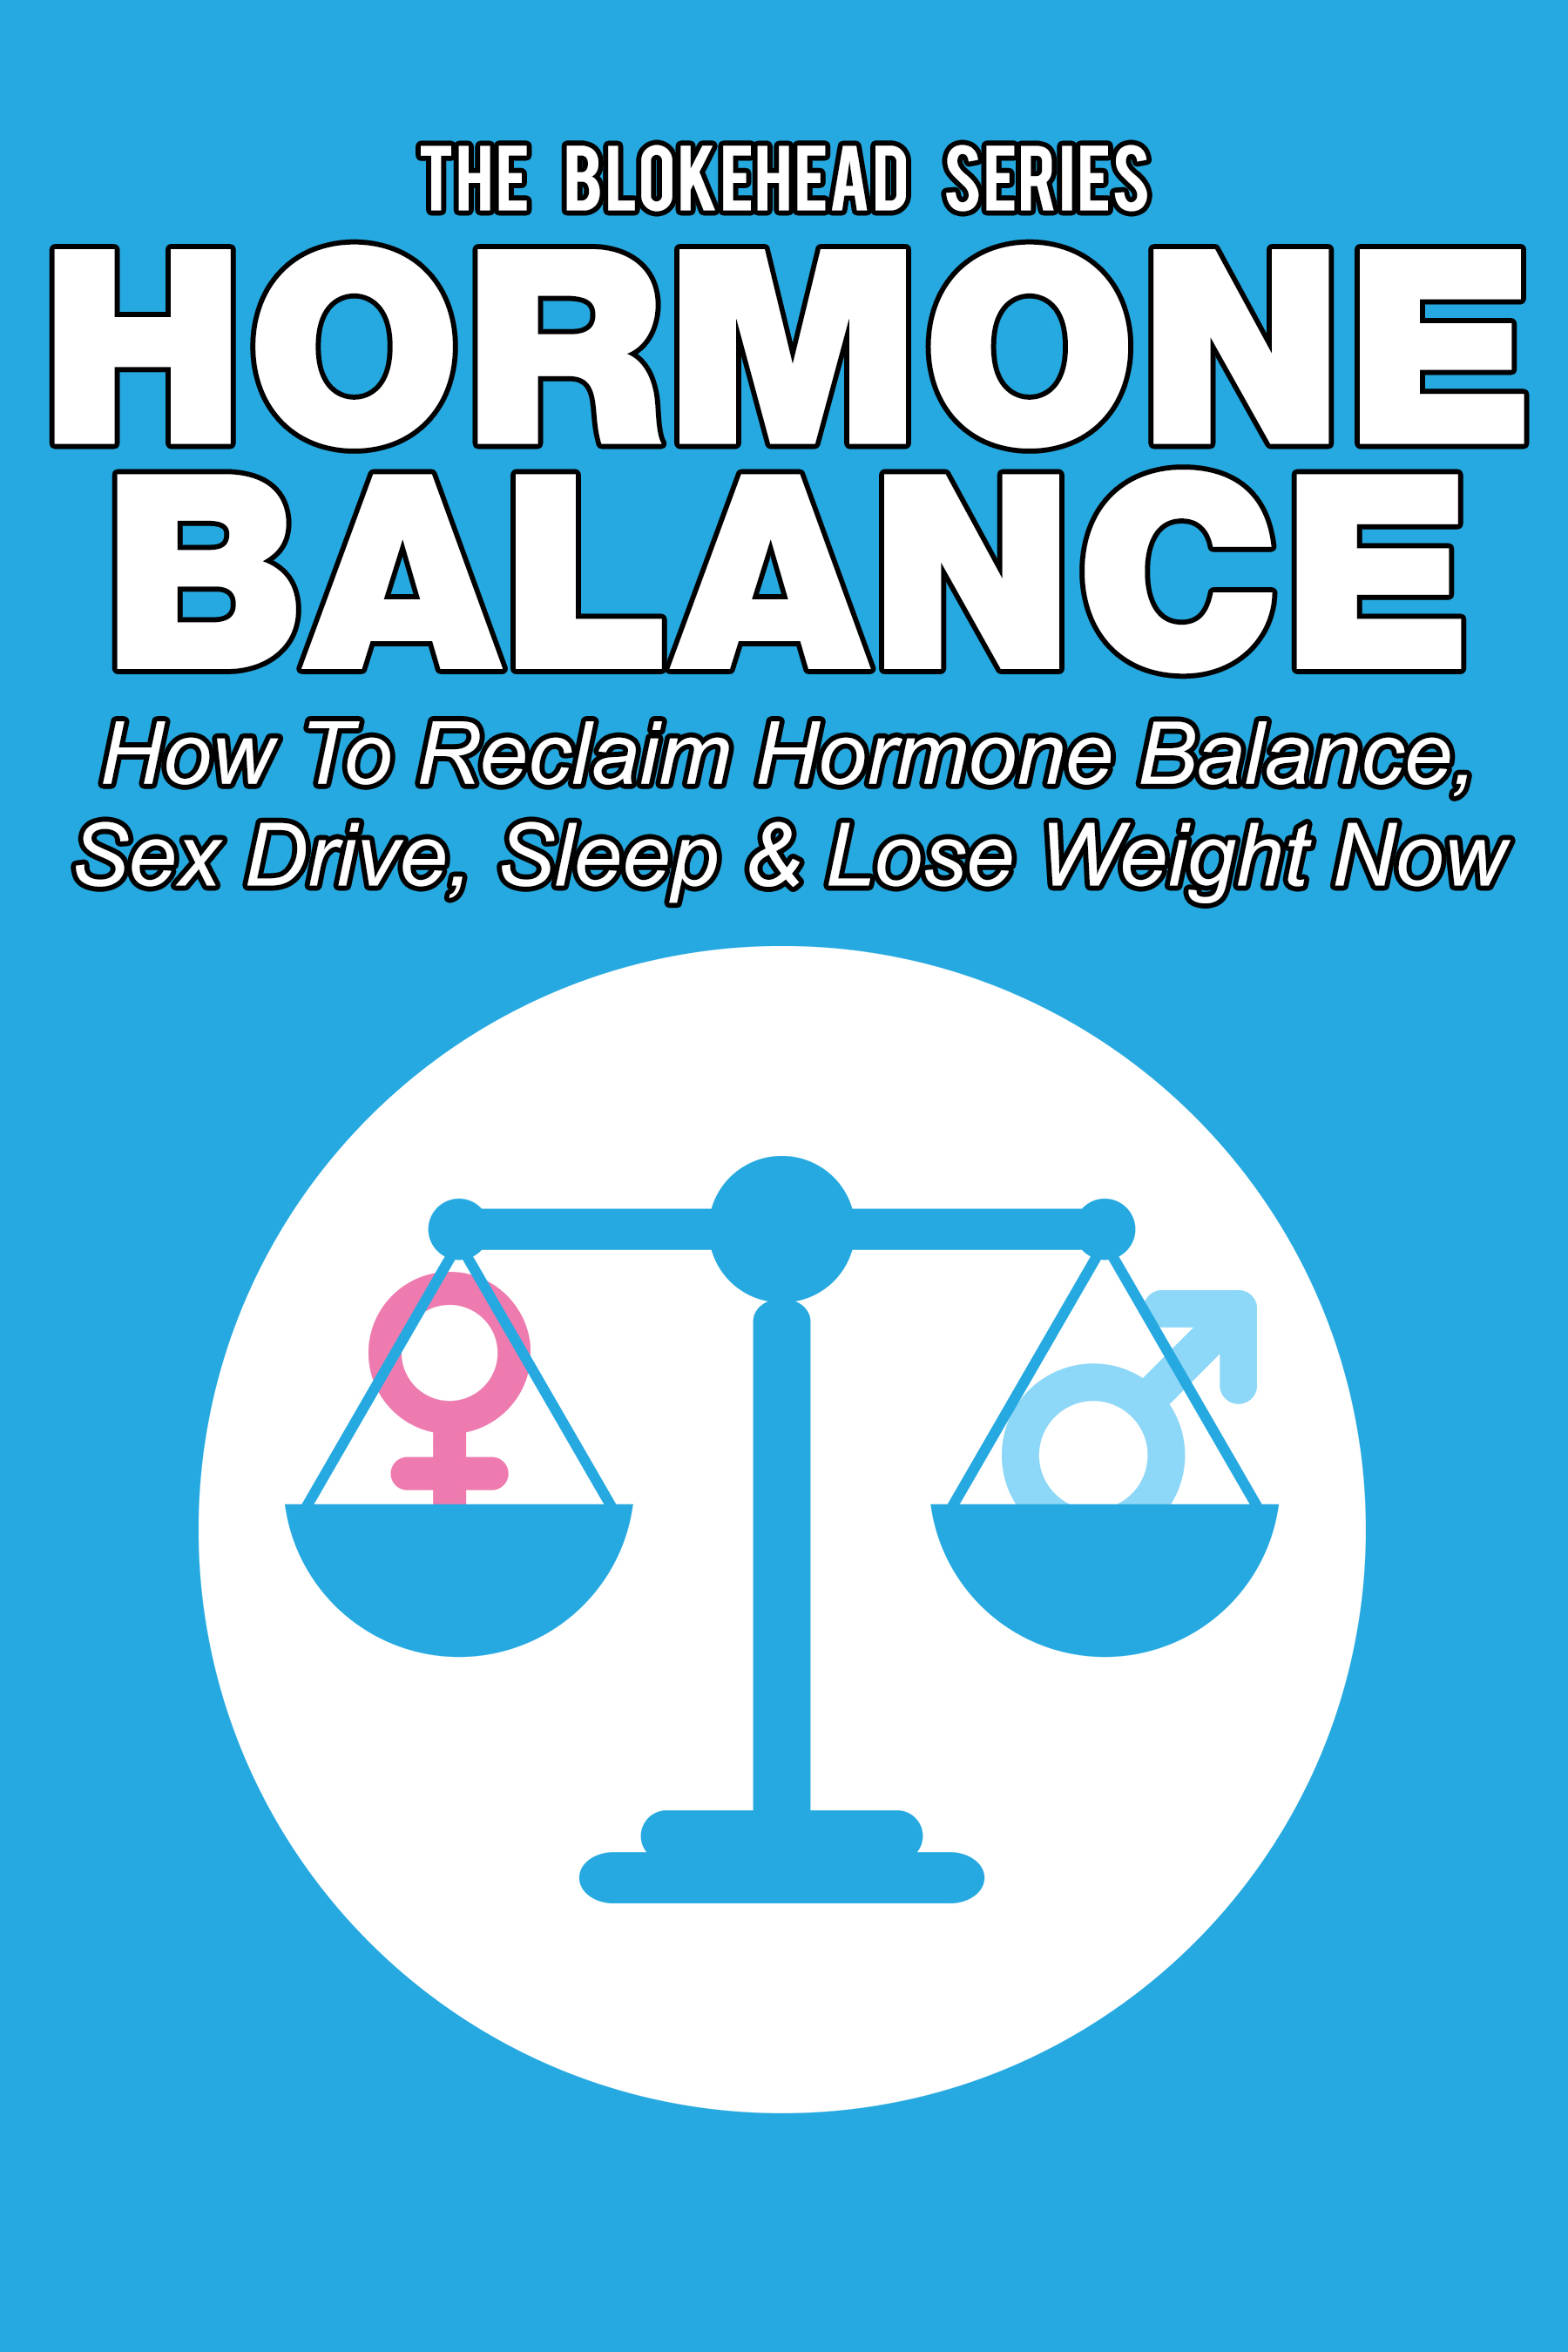 Hormone balance: how to reclaim hormone balance , sex drive, sleep & lose weight now